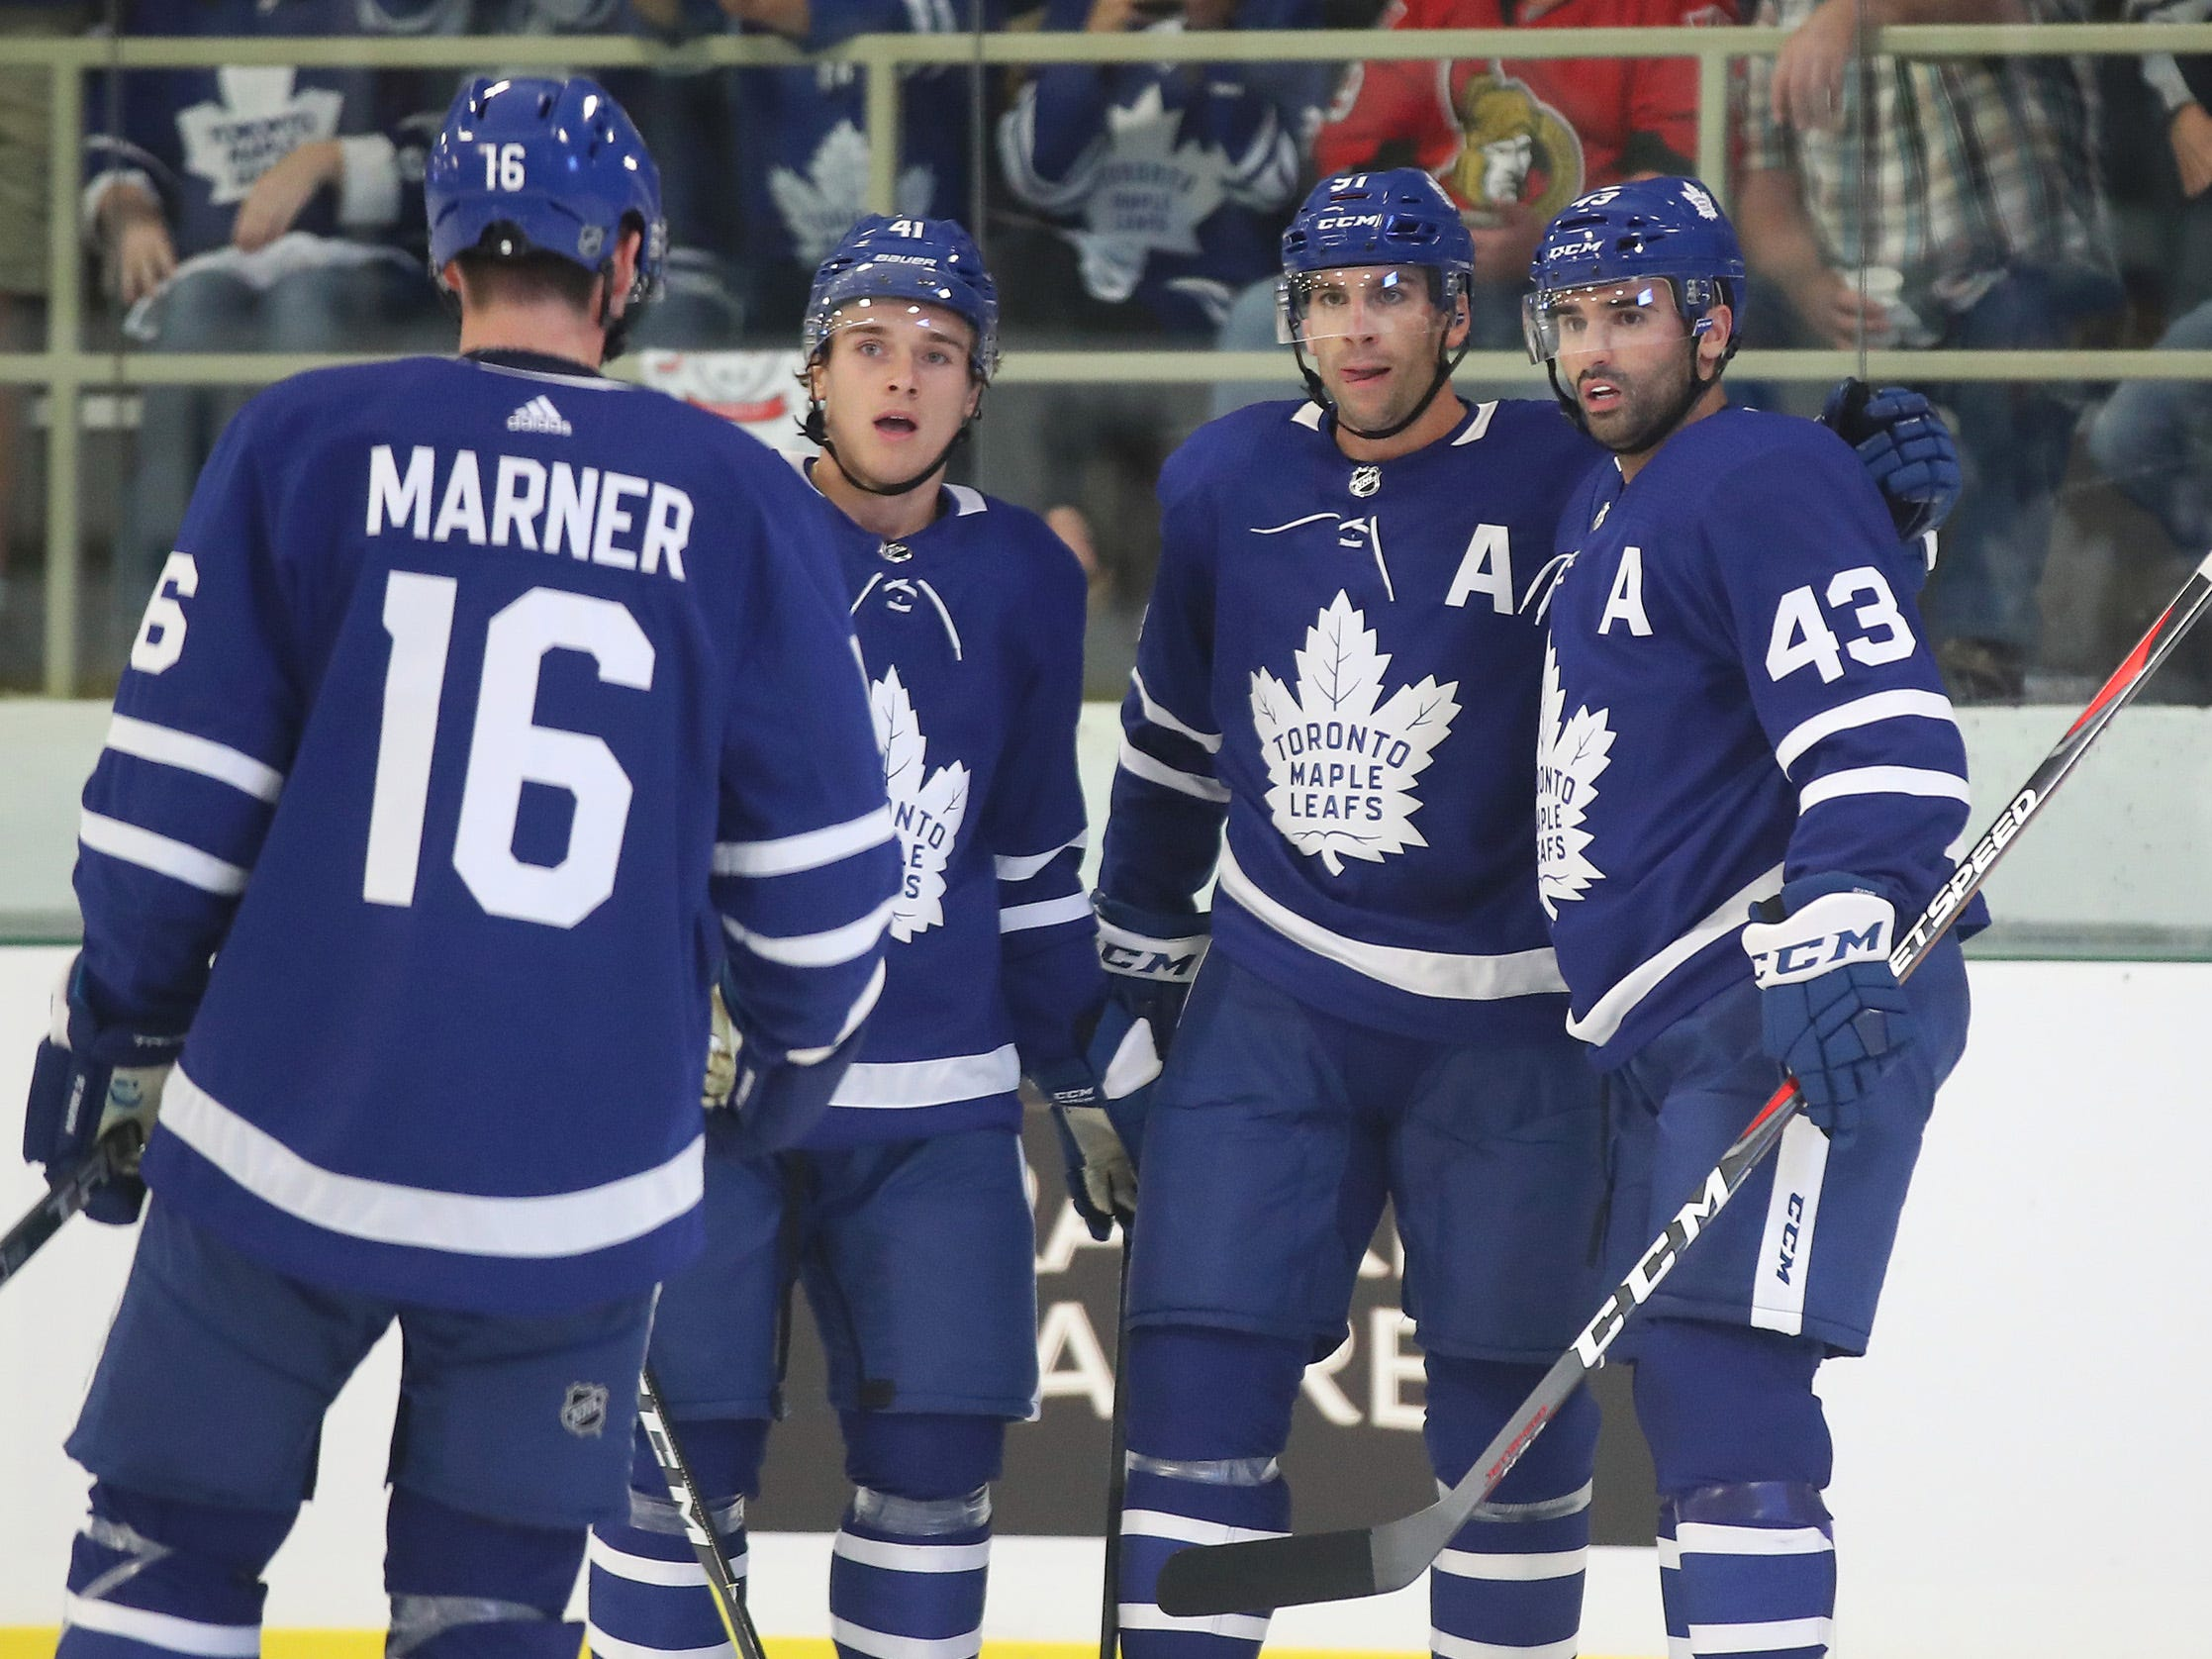 Toronto Maple Leafs center John Tavares (second from right) celebrates with teammates after scoring a goal in the first period against the Ottawa Senators.